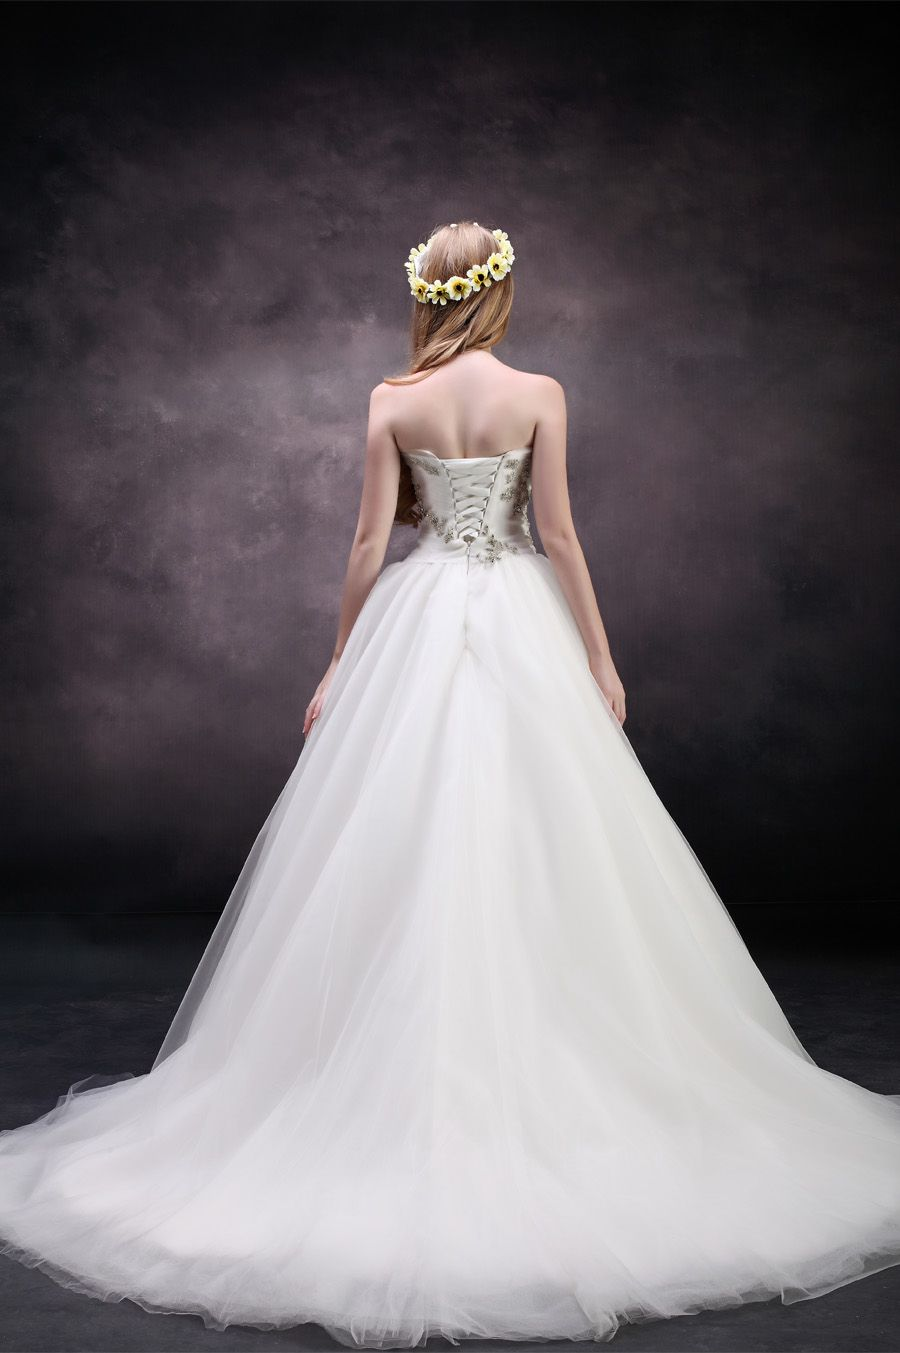 Fancy Strapless natural waist tulle wedding dress with chapel train,Style No.0bg02463,US$287.00   Read More:    http://www.weddingspnina.com/index.php?r=fancy-strapless-natural-waist-tulle-wedding-dress-with-chapel-train.html